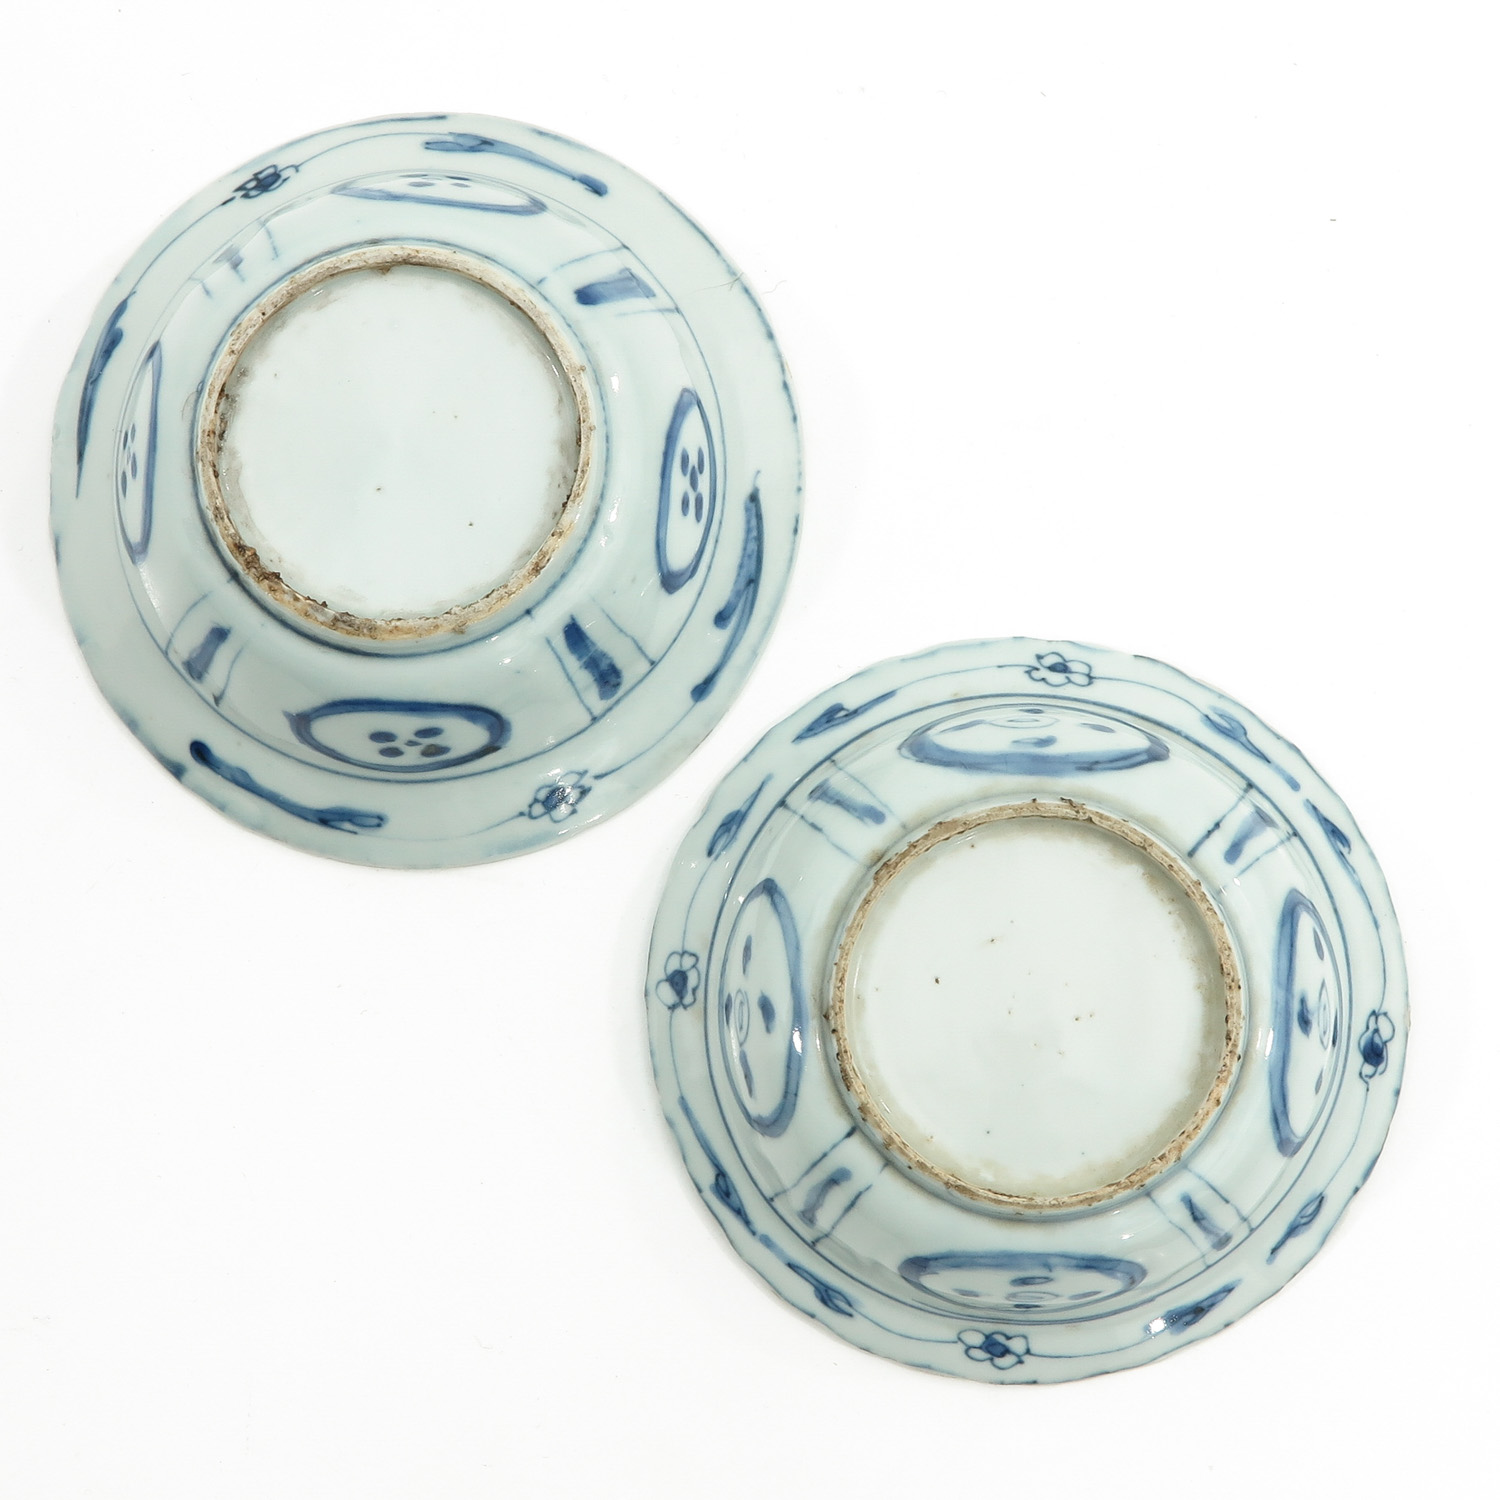 A Pair of Blue and White Bowls - Image 6 of 10